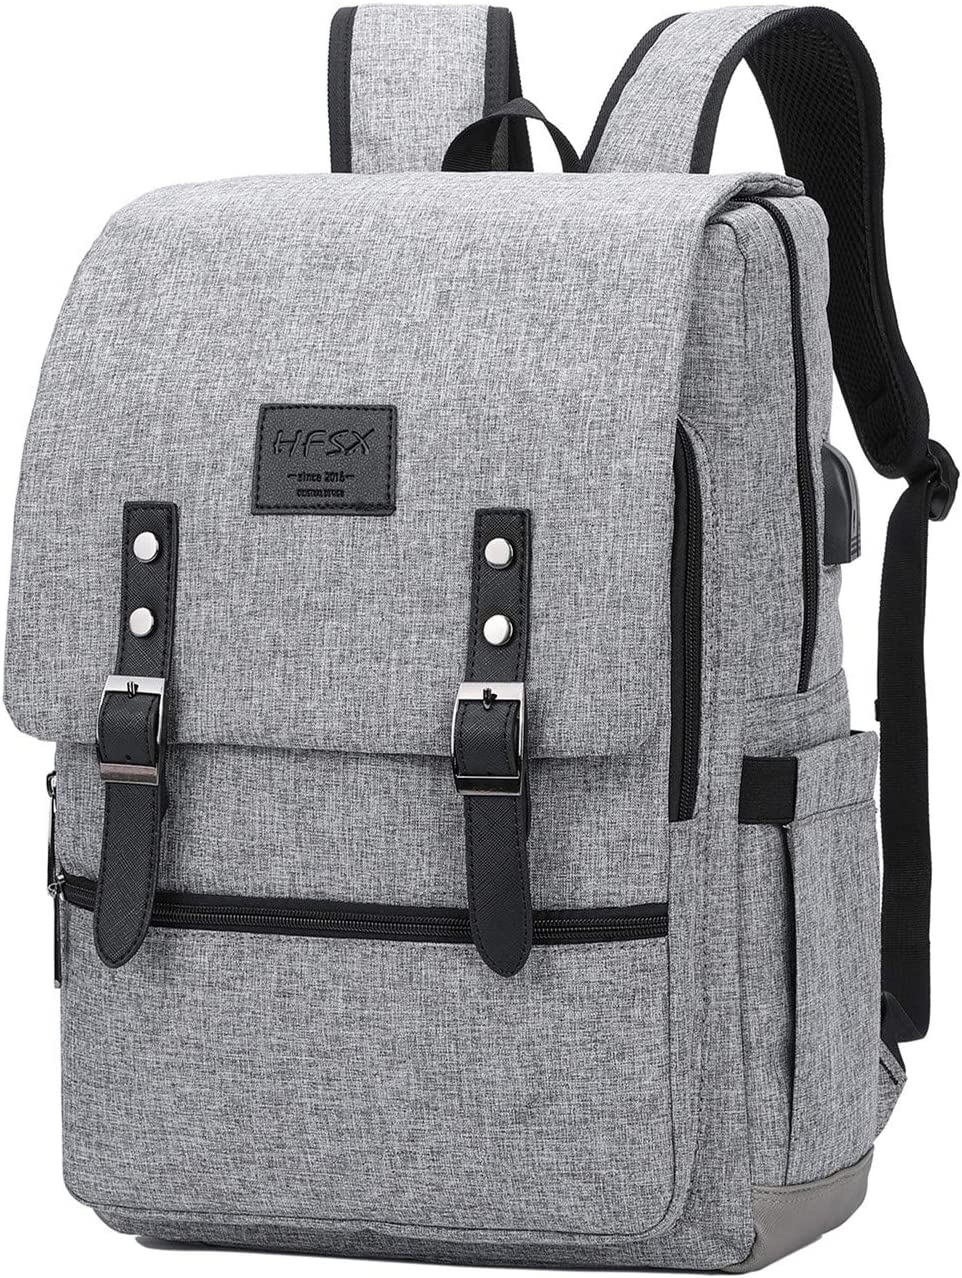 Vintage Backpack Anti Theft Laptop Backpack Men Women Business Travel Computer Backpack School College Bookbag Stylish Water Resistant Vintage Backpack with USB Port Fits 15.6 Inch Laptop Grey